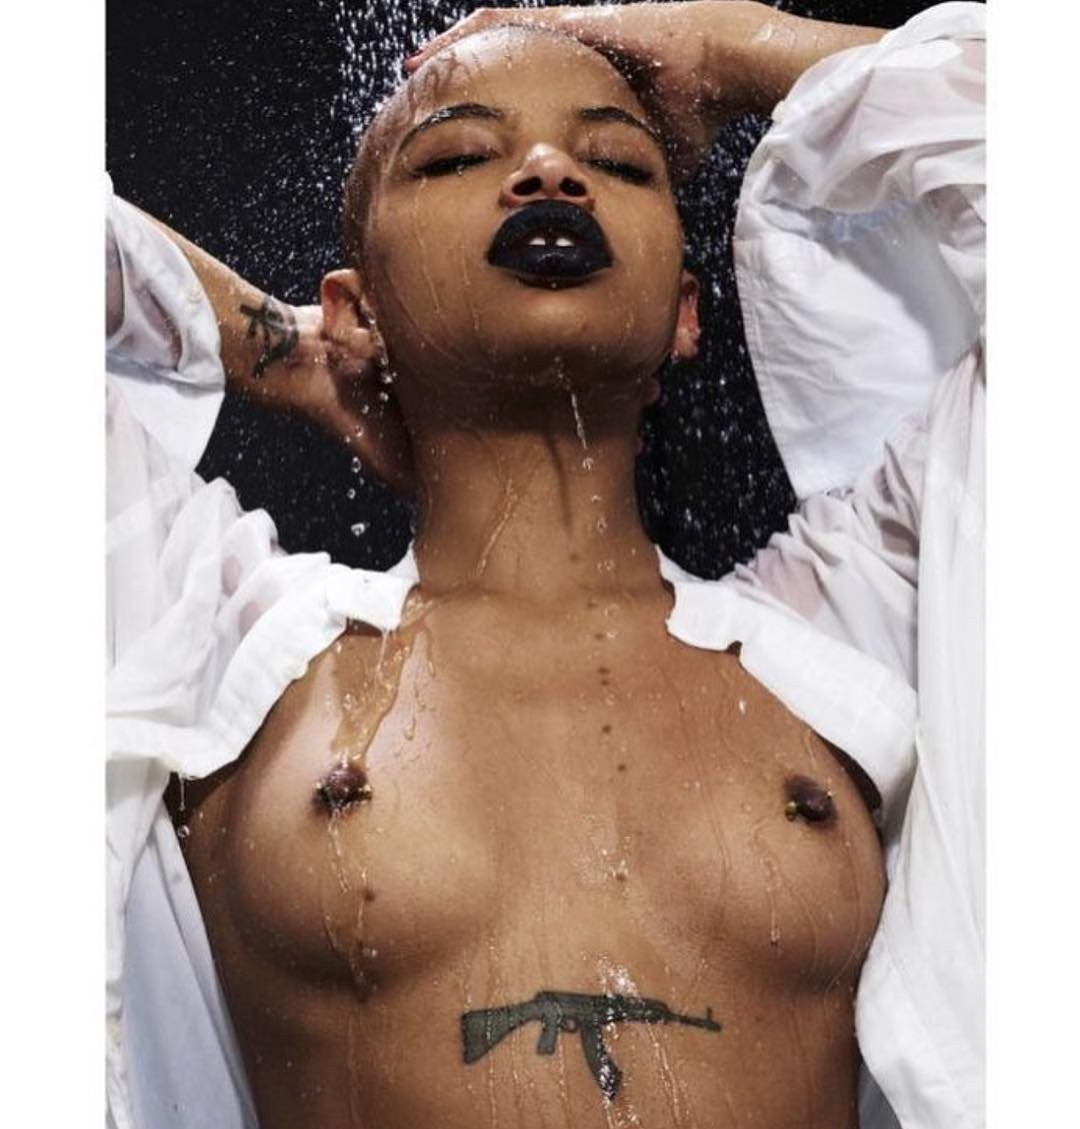 Slick Woods Leaked Nude Picutres, Tattooed Body